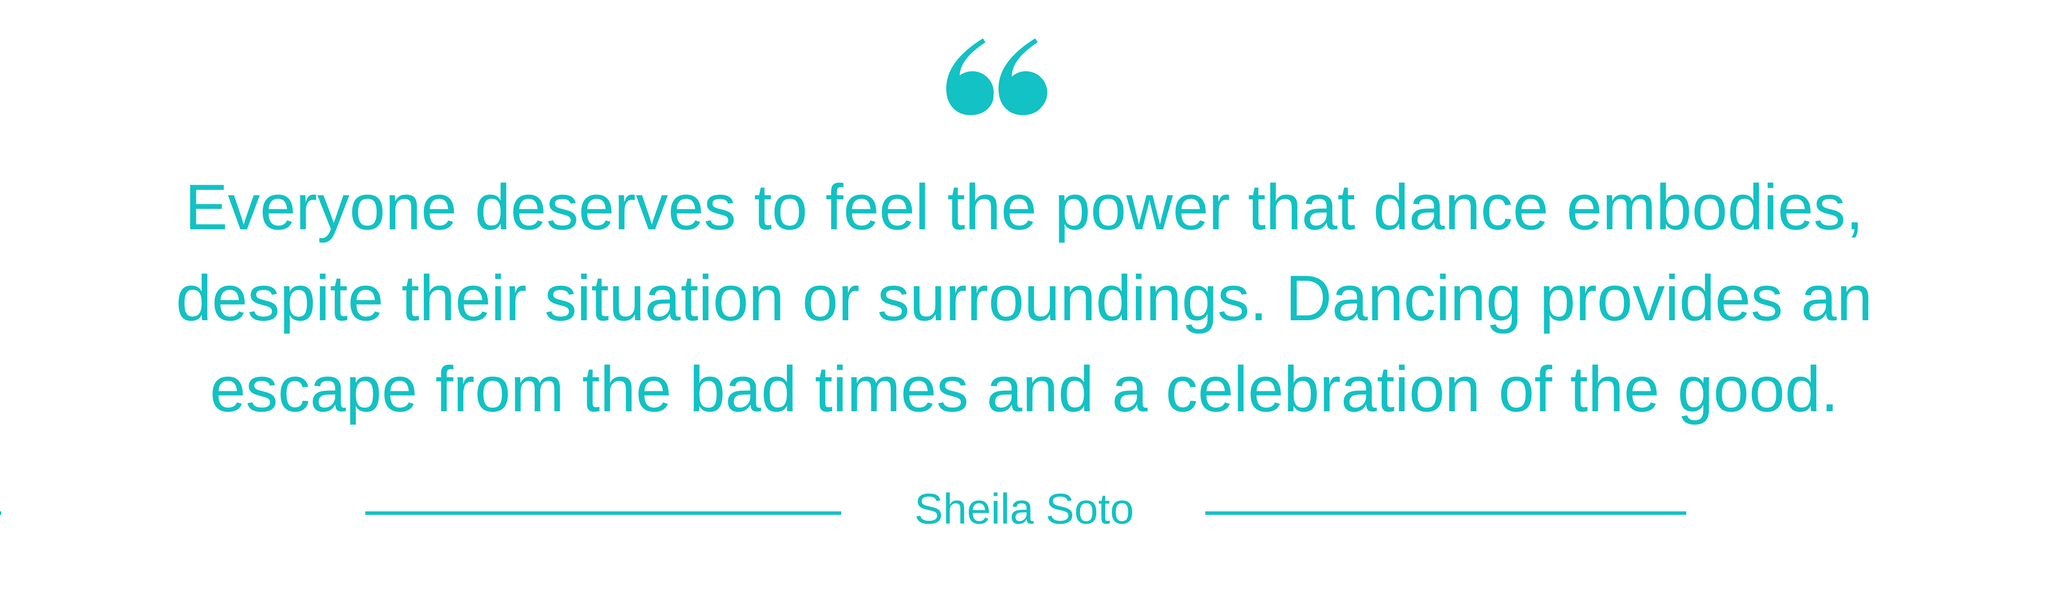 6_Sheila_Quote_banner_2017.png